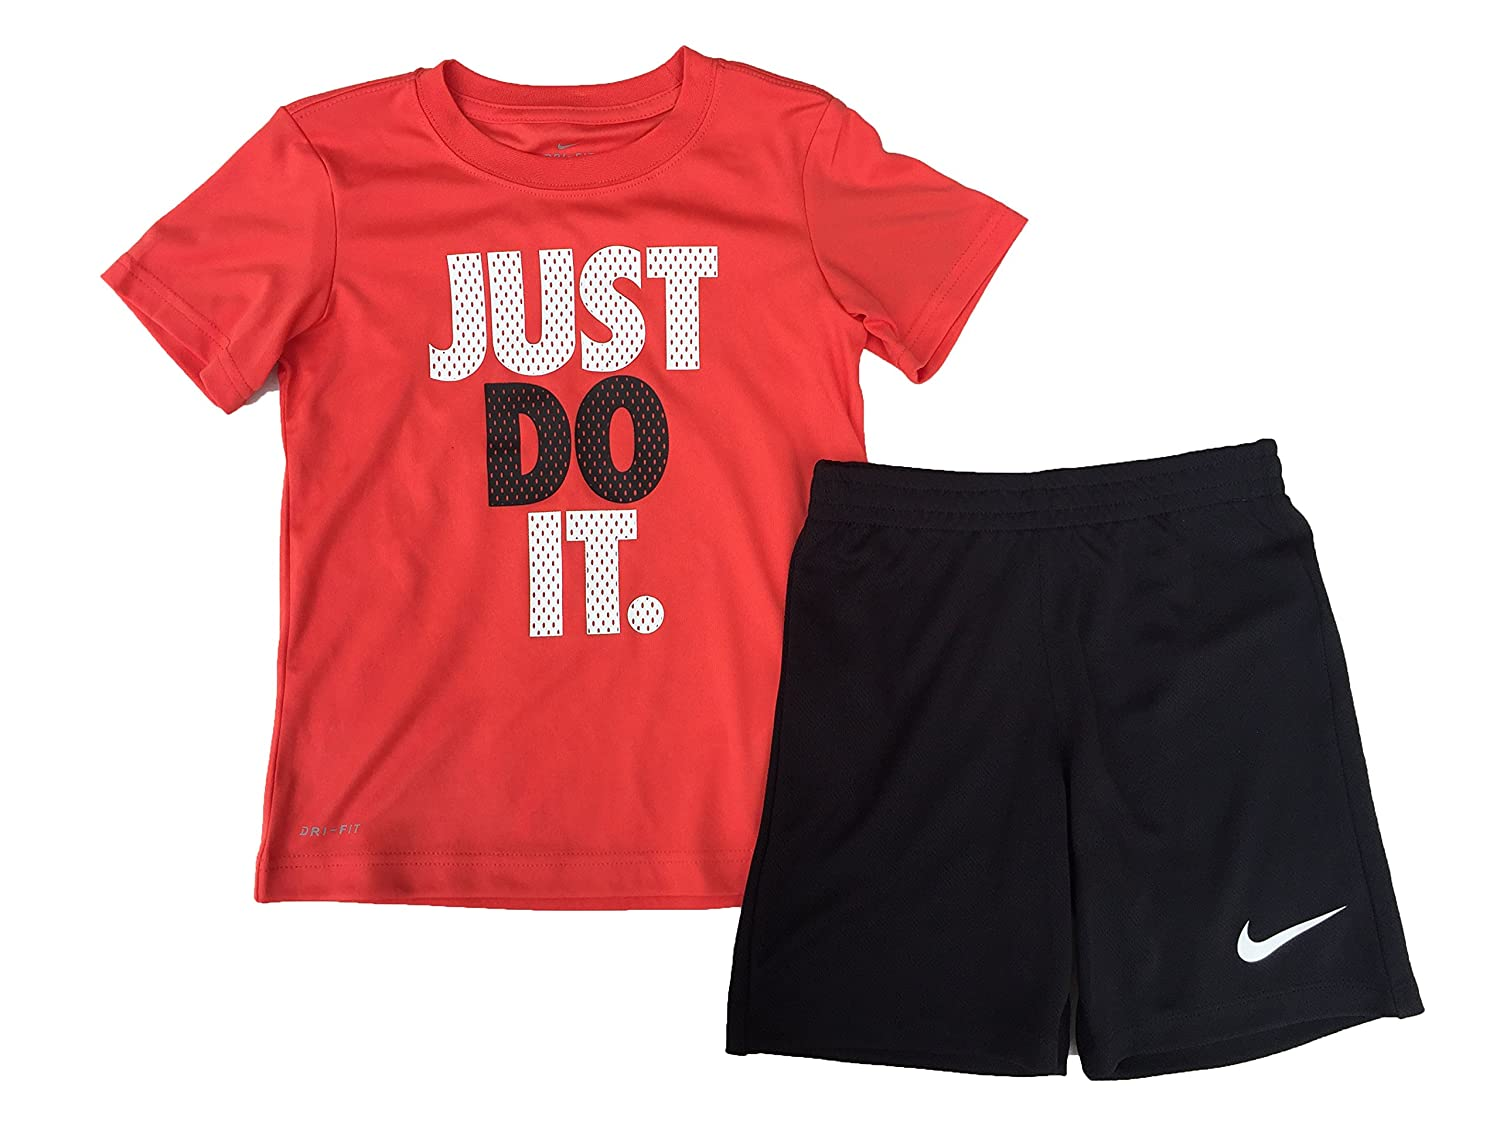 c026c8538 Online Cheap wholesale Nike Toddler Boys Dri Fit Short Sleeve T-Shirt and Shorts  2 Piece Set Hoodies & Active Suppliers